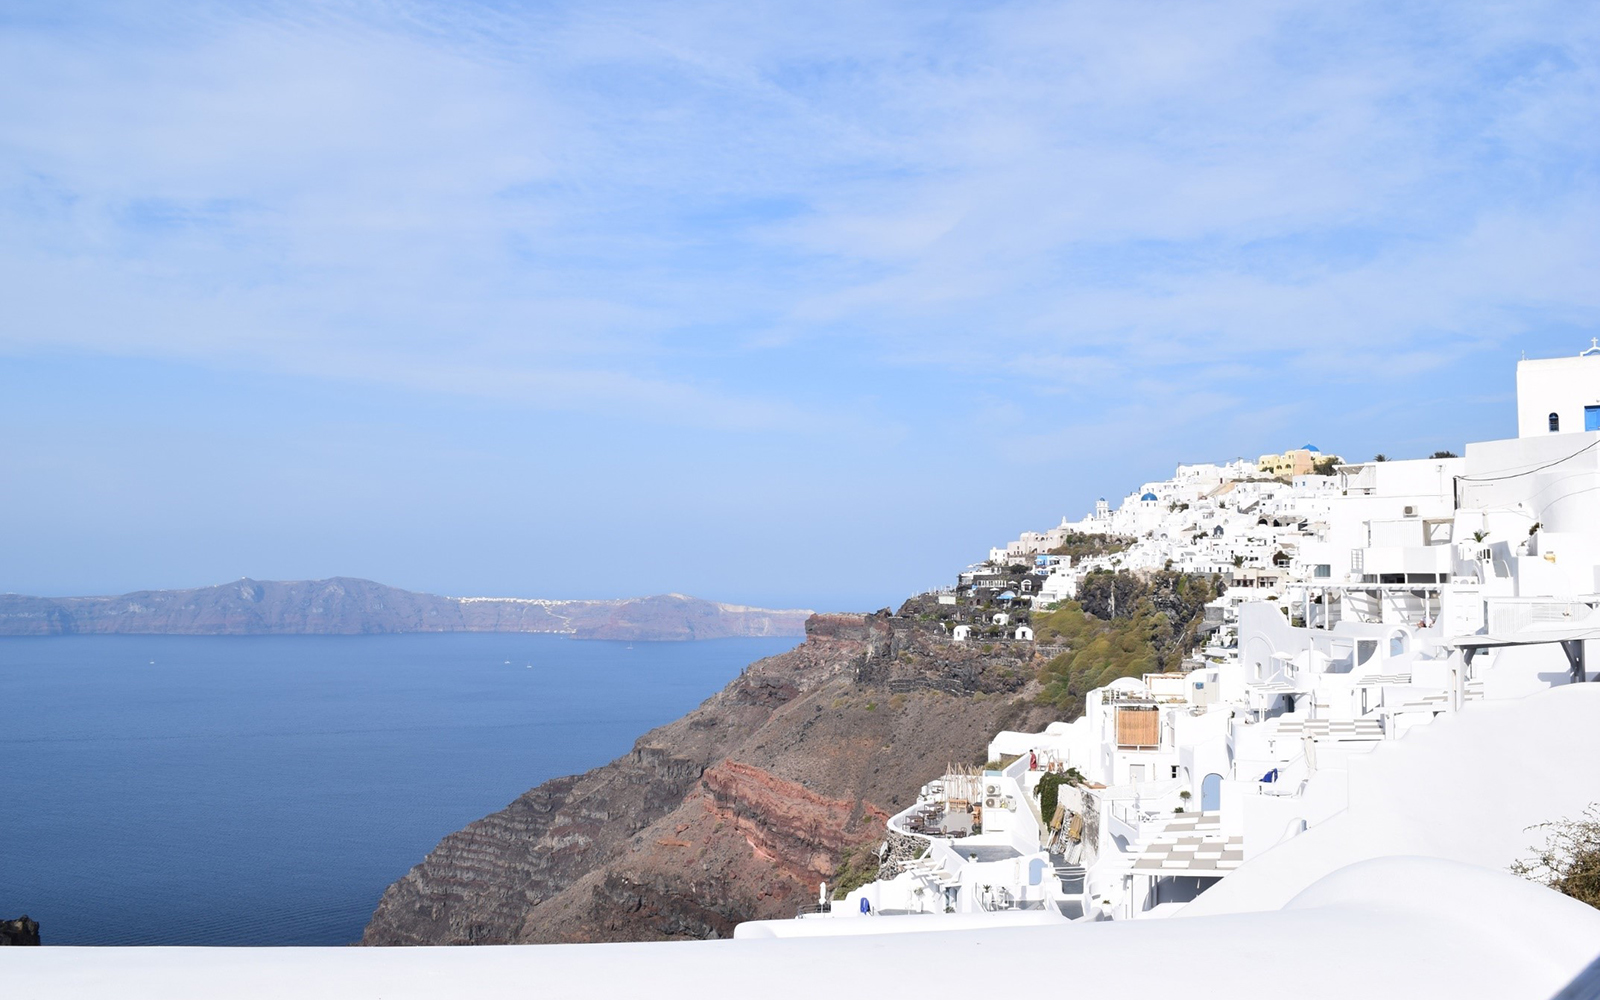 The town of Fira on the Thira Island (Santorini)(Kasia Kolc / UConn School of Business)